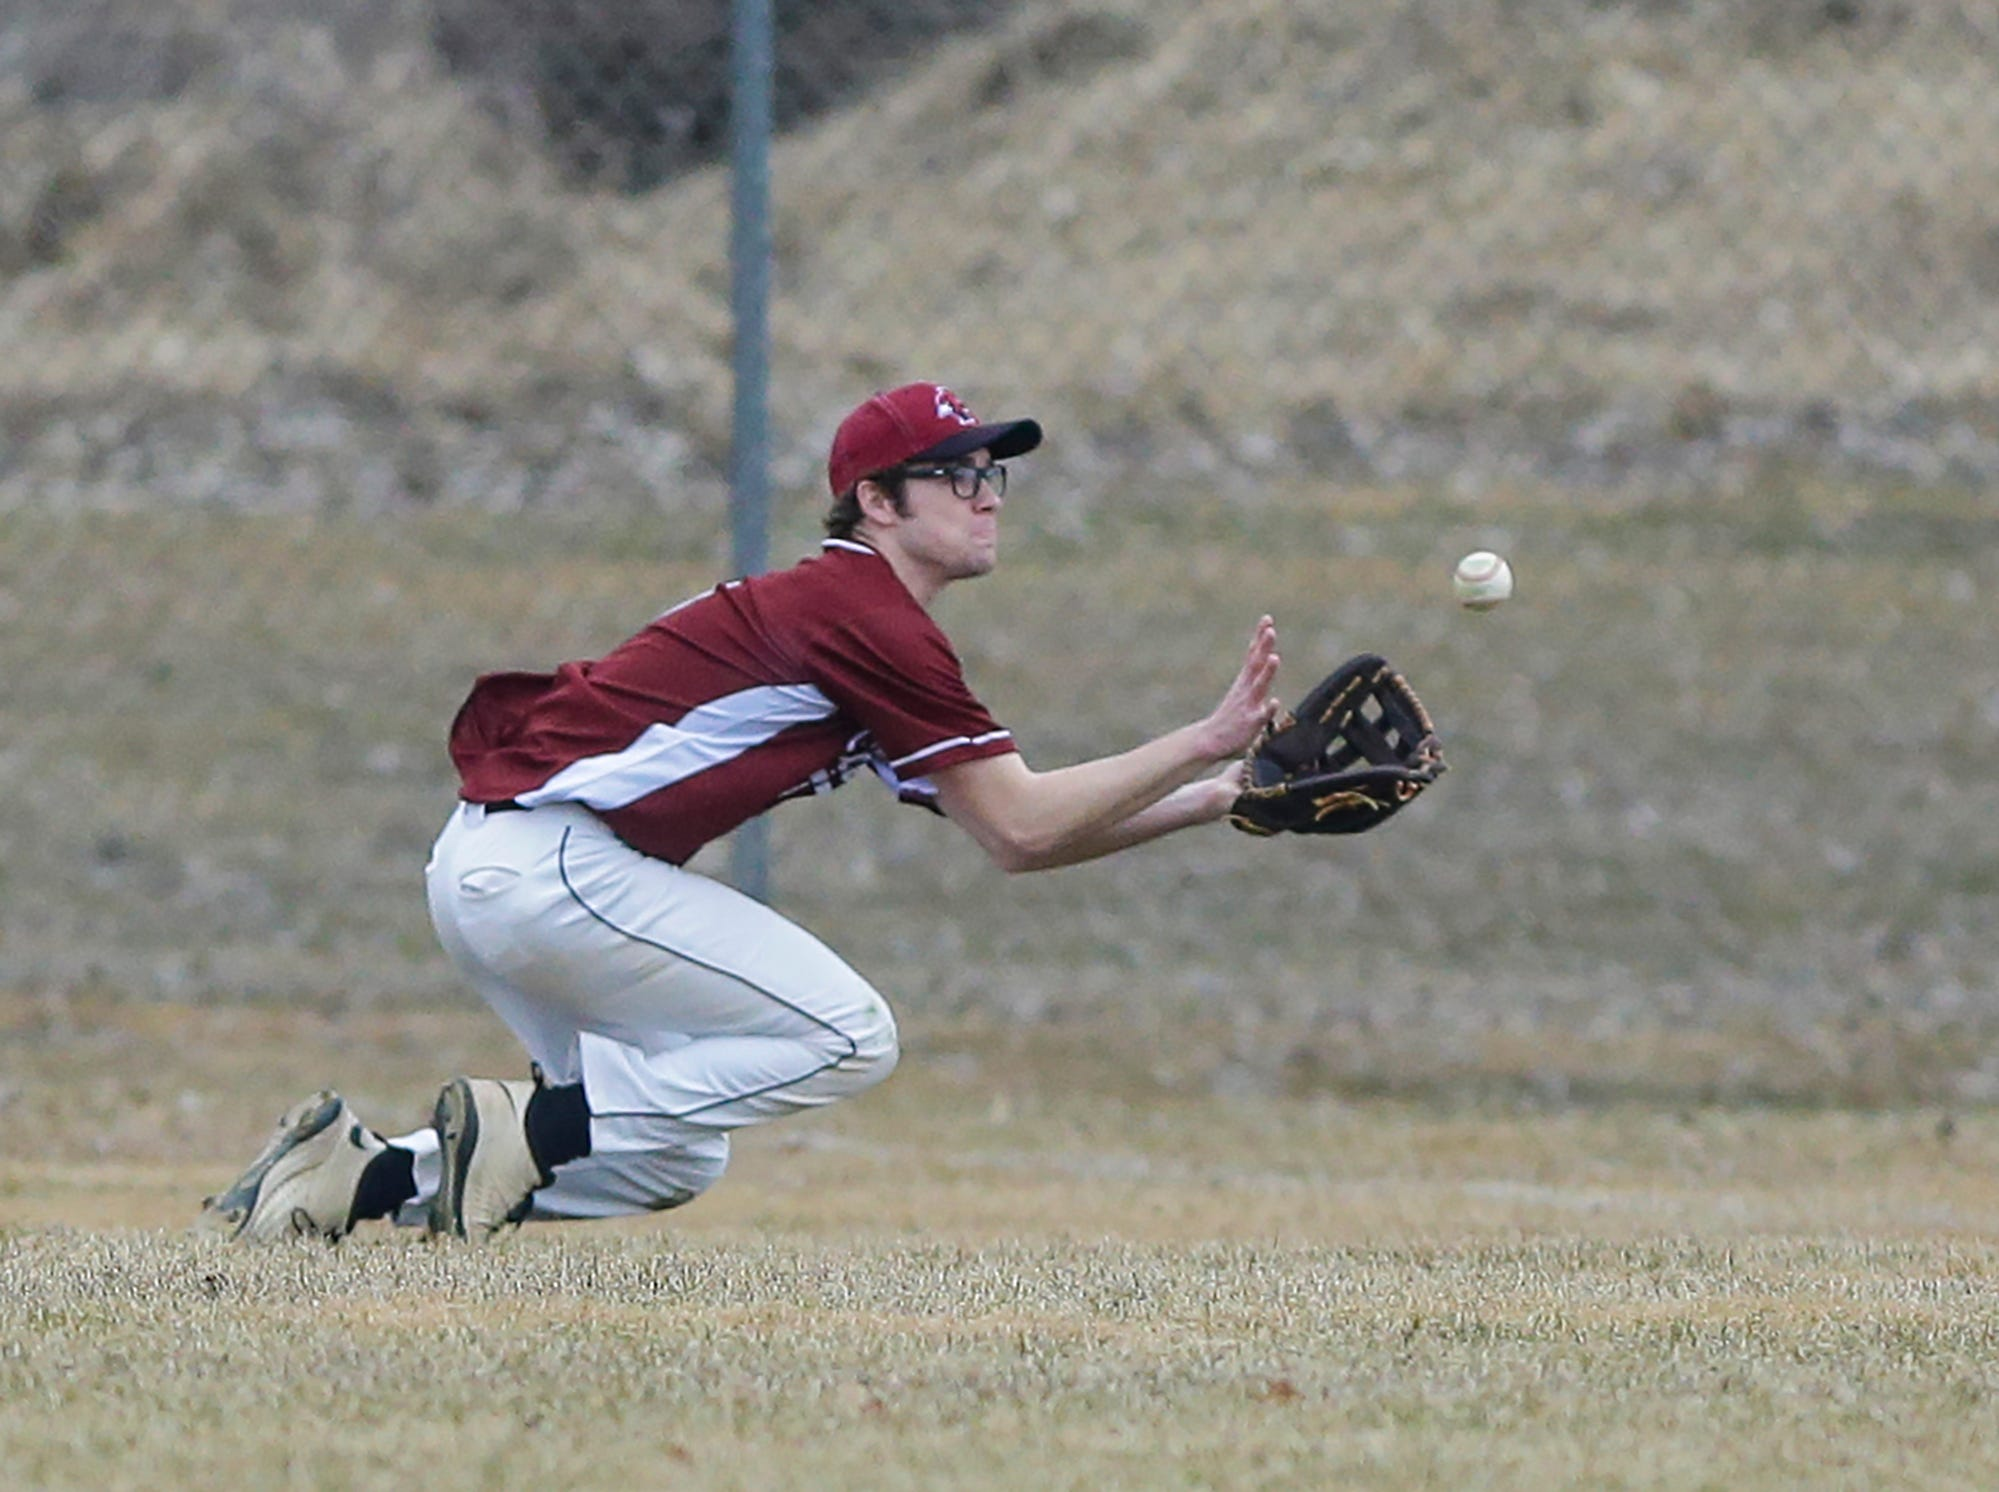 Fond du Lac High School baseball's Drew Bonlander makes a diving catch against Ashwaubenon High School Saturday, April 6, 2019 during their game in Fond du Lac, Wis. Fond du Lac won the game 5-3. Doug Raflik/USA TODAY NETWORK-Wisconsin